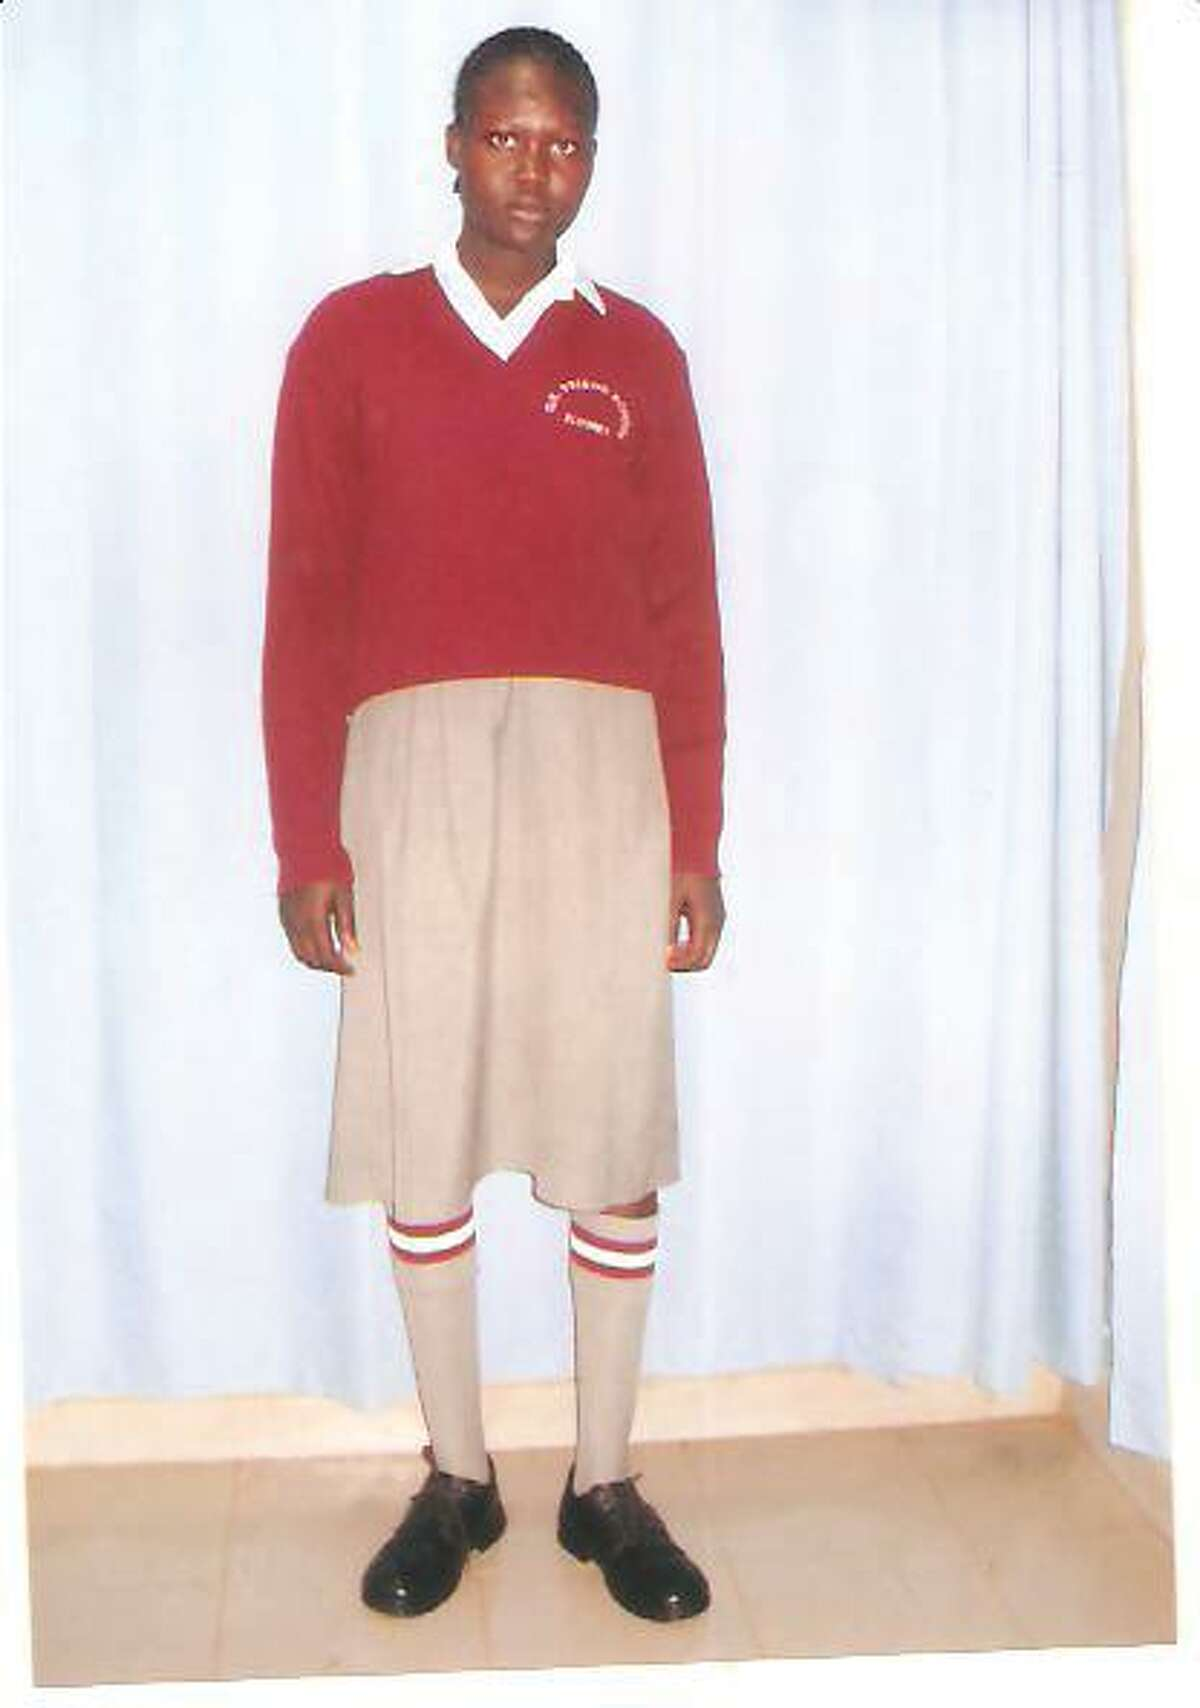 Contributed photo to the Register CitizenThe newest student and most recently sponsored orphan by New Sudan Jonglei Orphans Foundation, Akech Majok, is just one of many Sudanese refugee children the non-profit plans on helping.